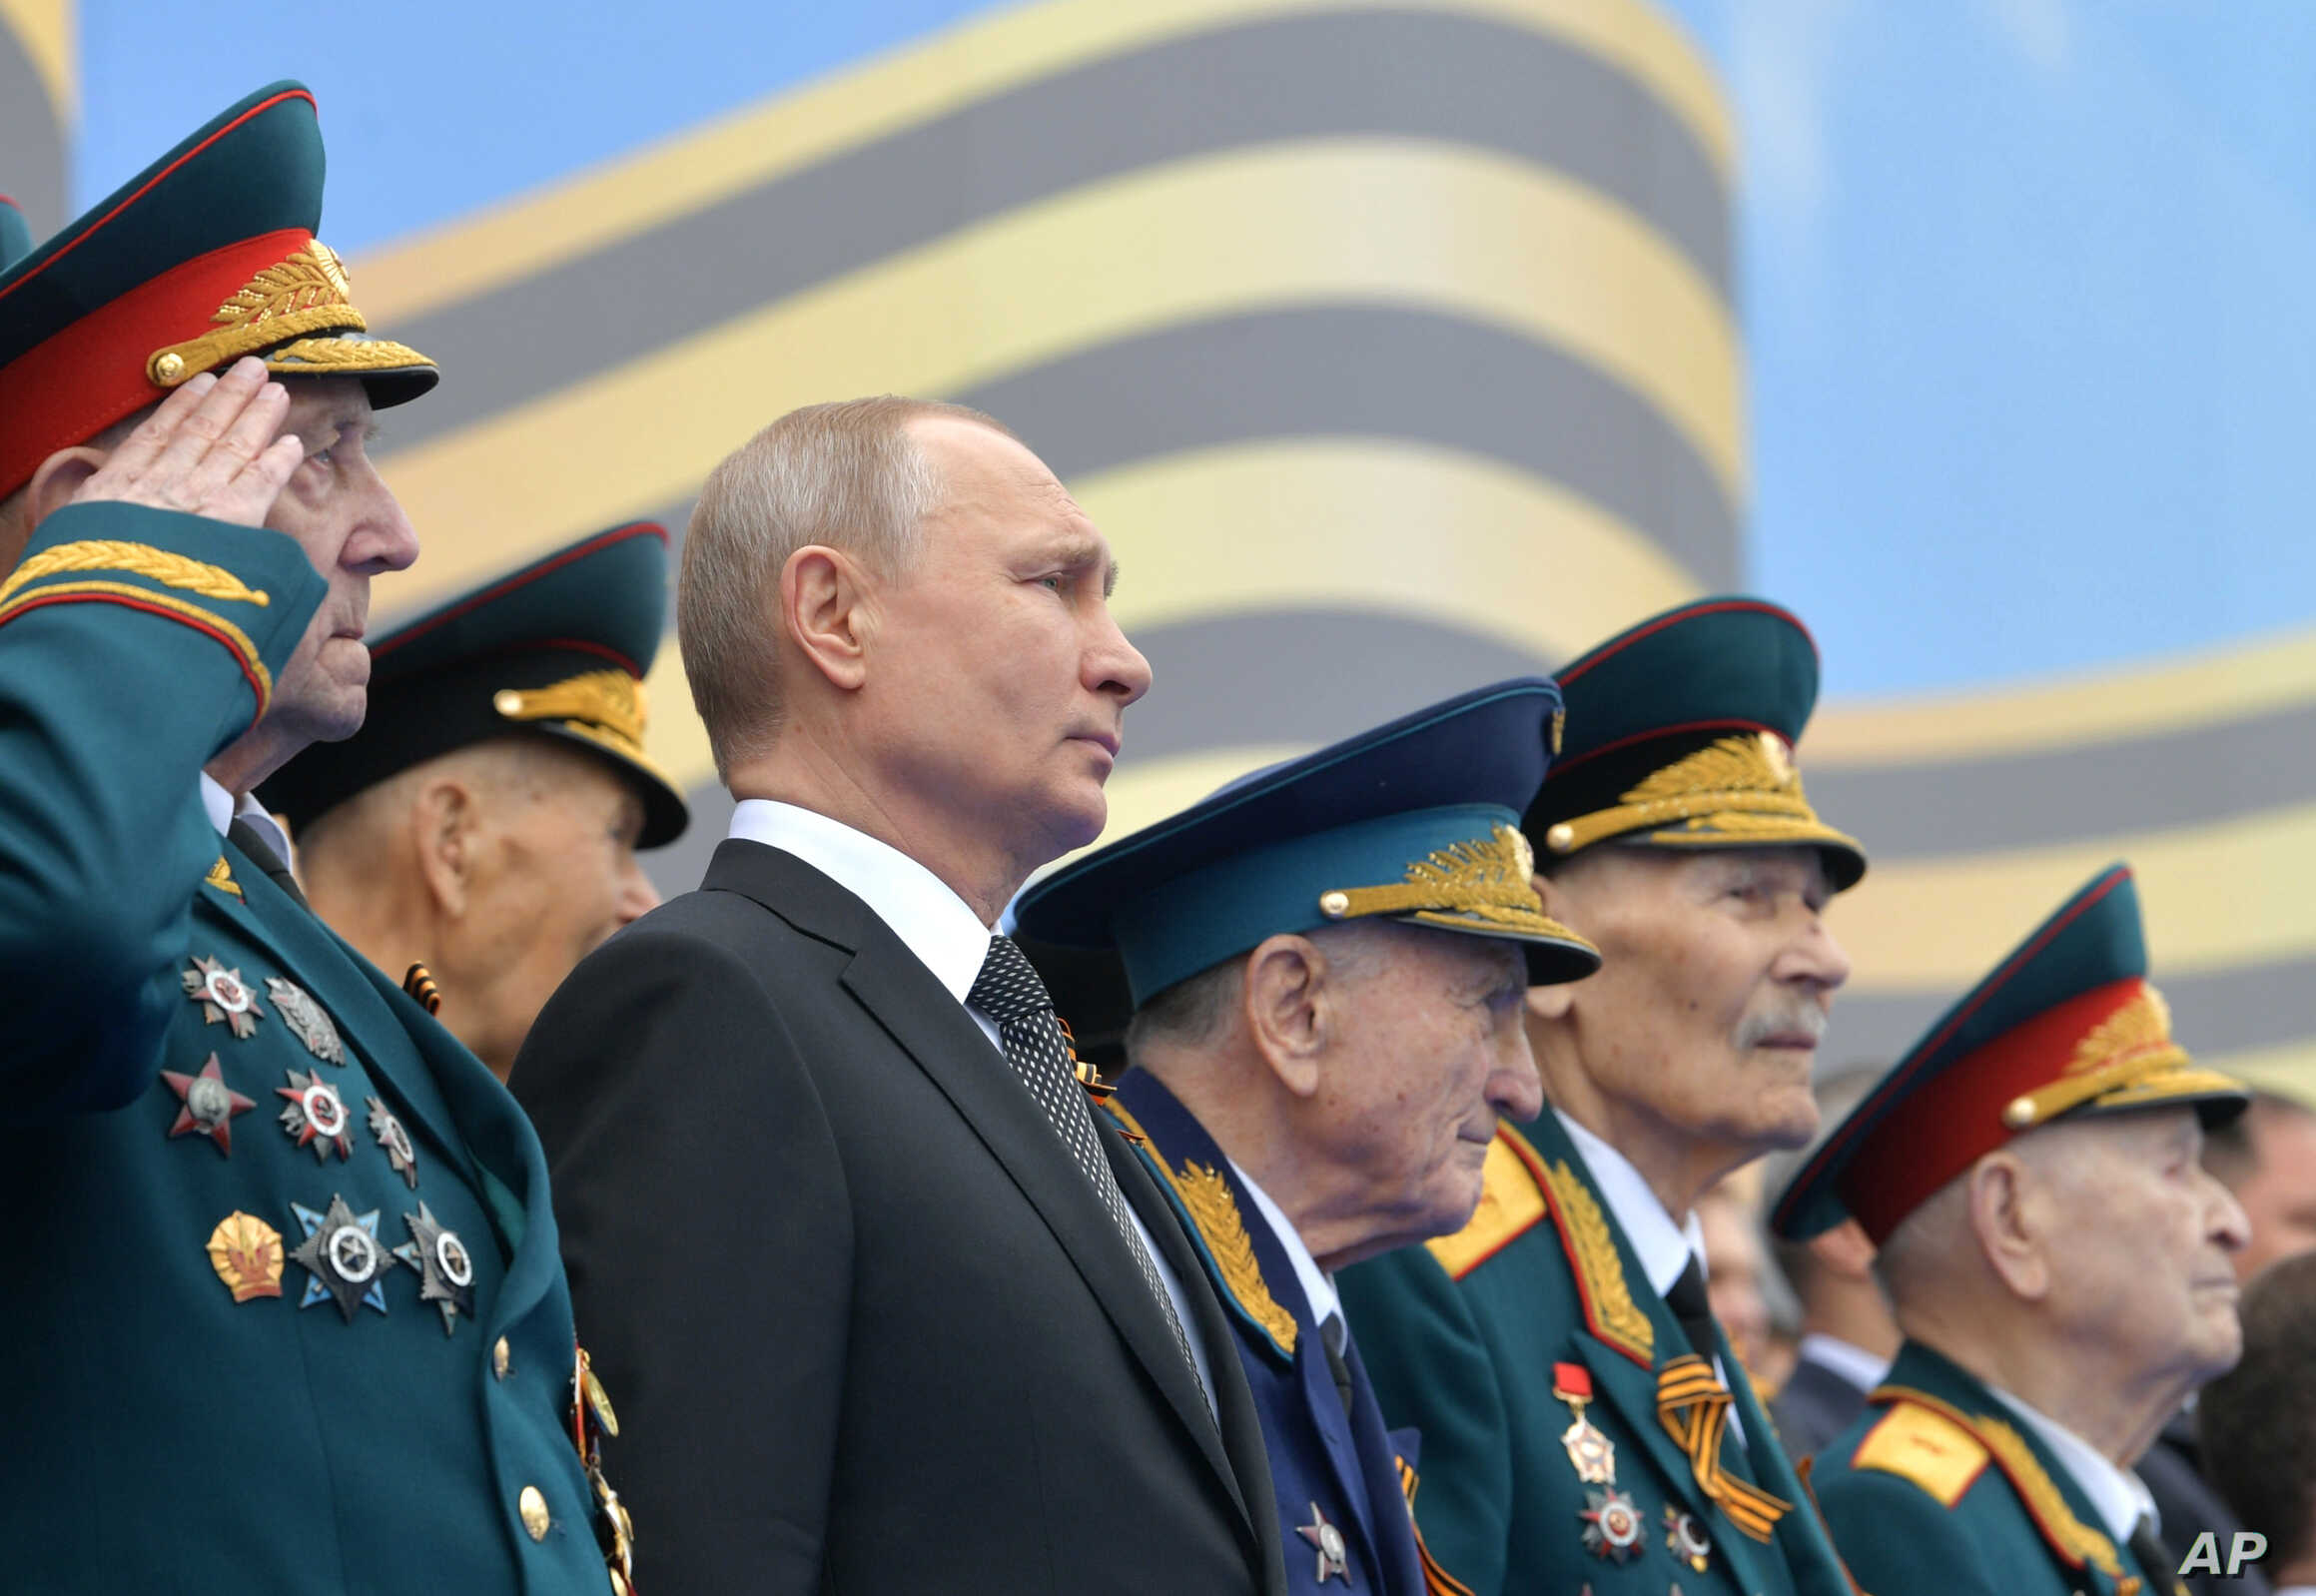 Putin Sets Date For Delayed World War Ii Victory Parade Voice Of America English